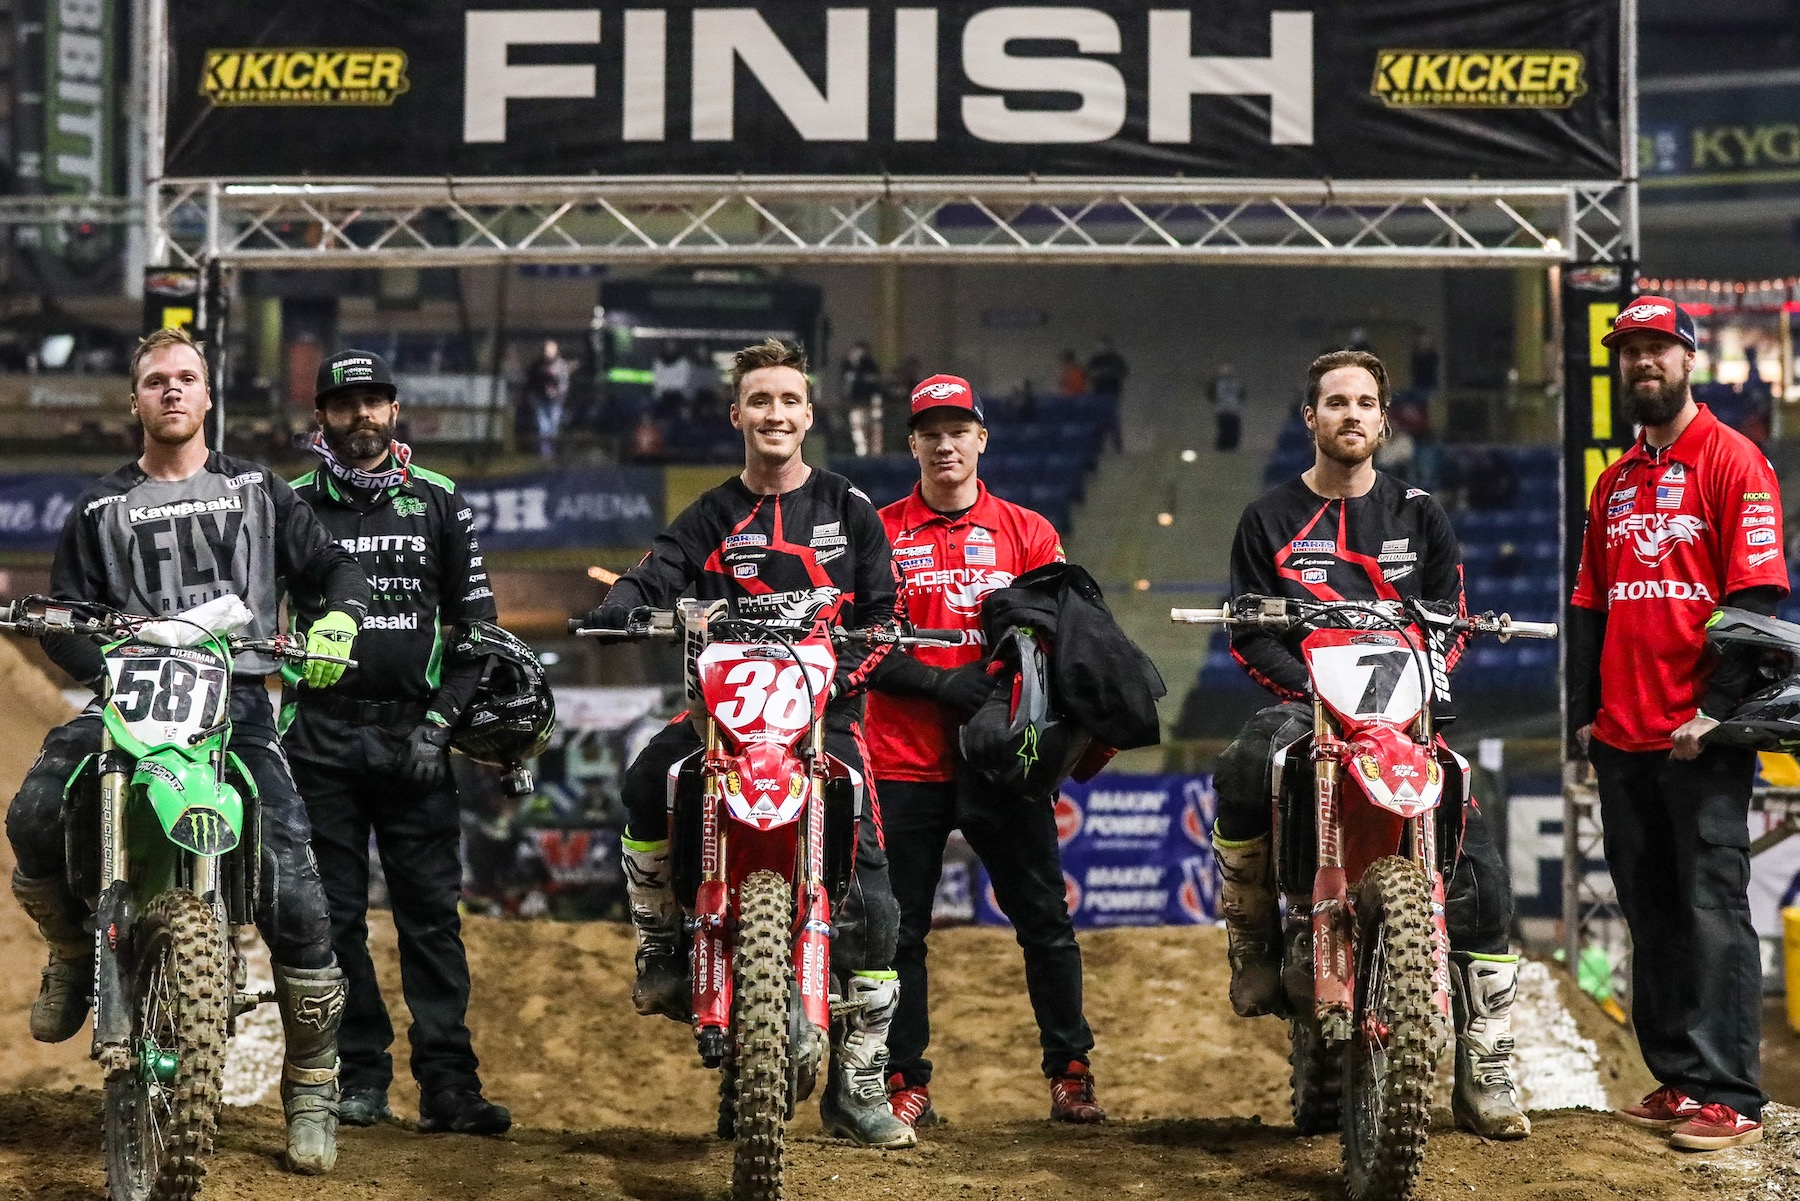 From the left, Kyle Bitterman, Kyle Peters, and Jace Owen after the 450 Pro Main event on Friday. (Photo- Jack Jaxson) [3]